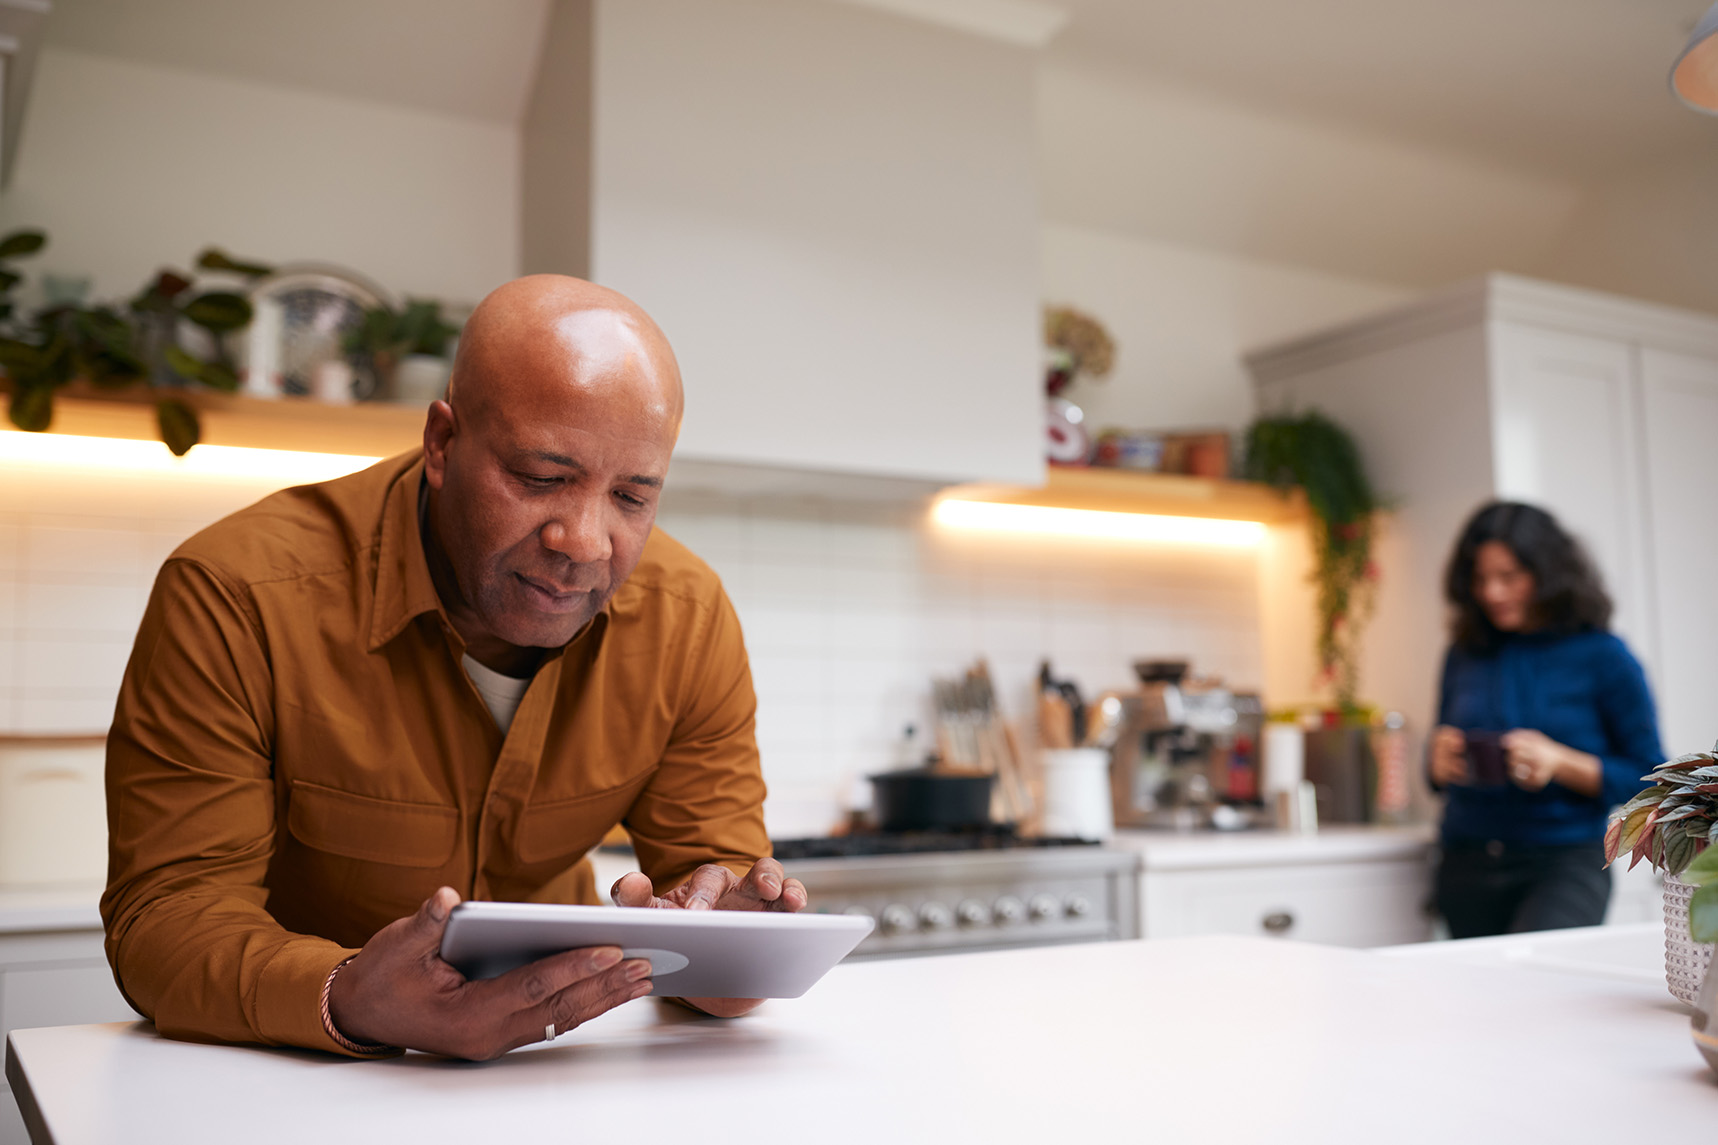 Photo of a mature man seated at a kitchen island staring at a digital tablet and a woman standing in the background looking at her phone